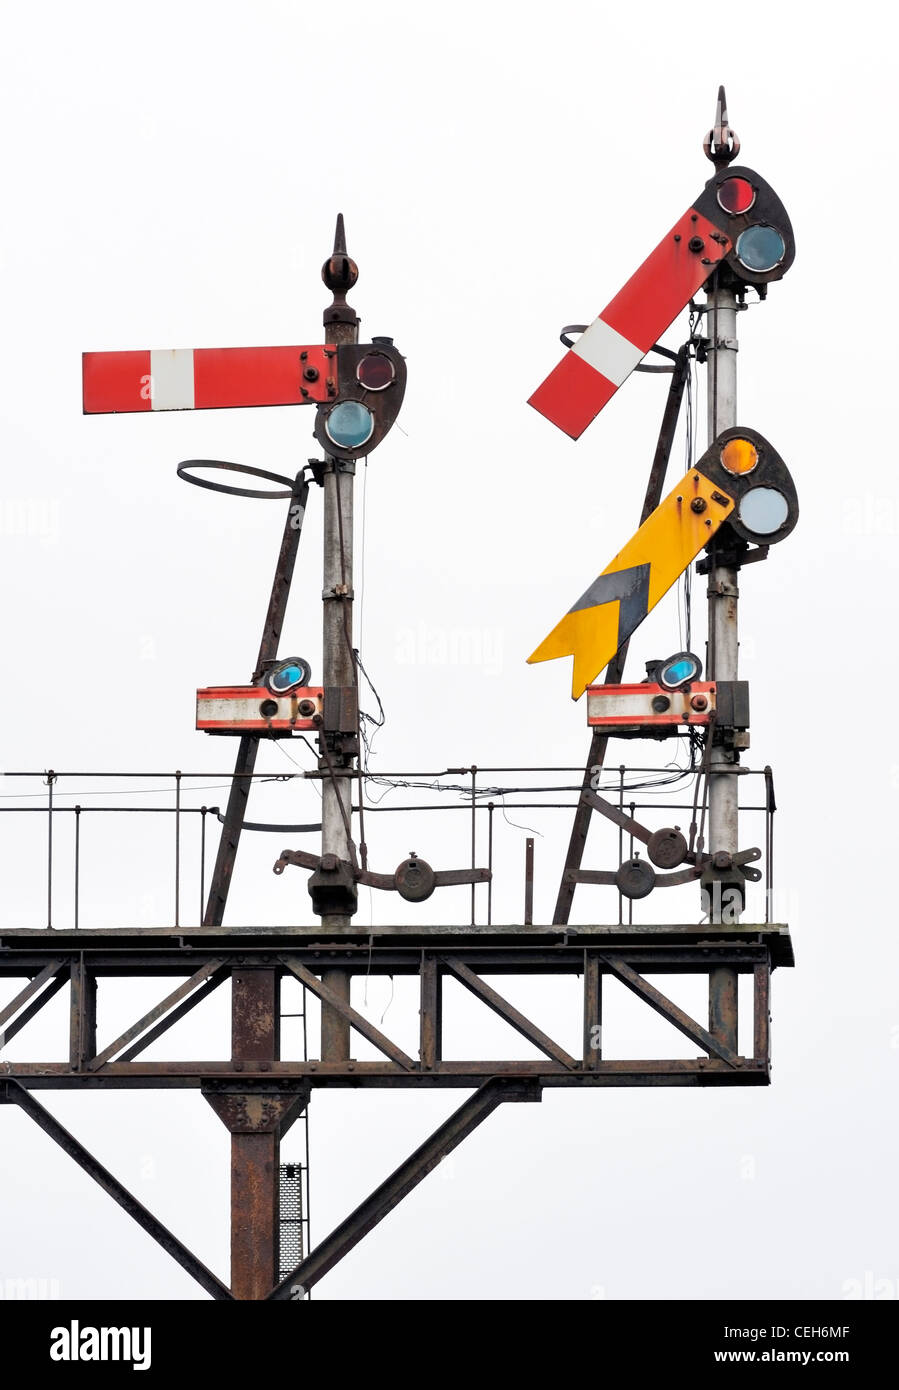 Closeup on traditional English semaphore railway signals on gantry on white background Stock Photo